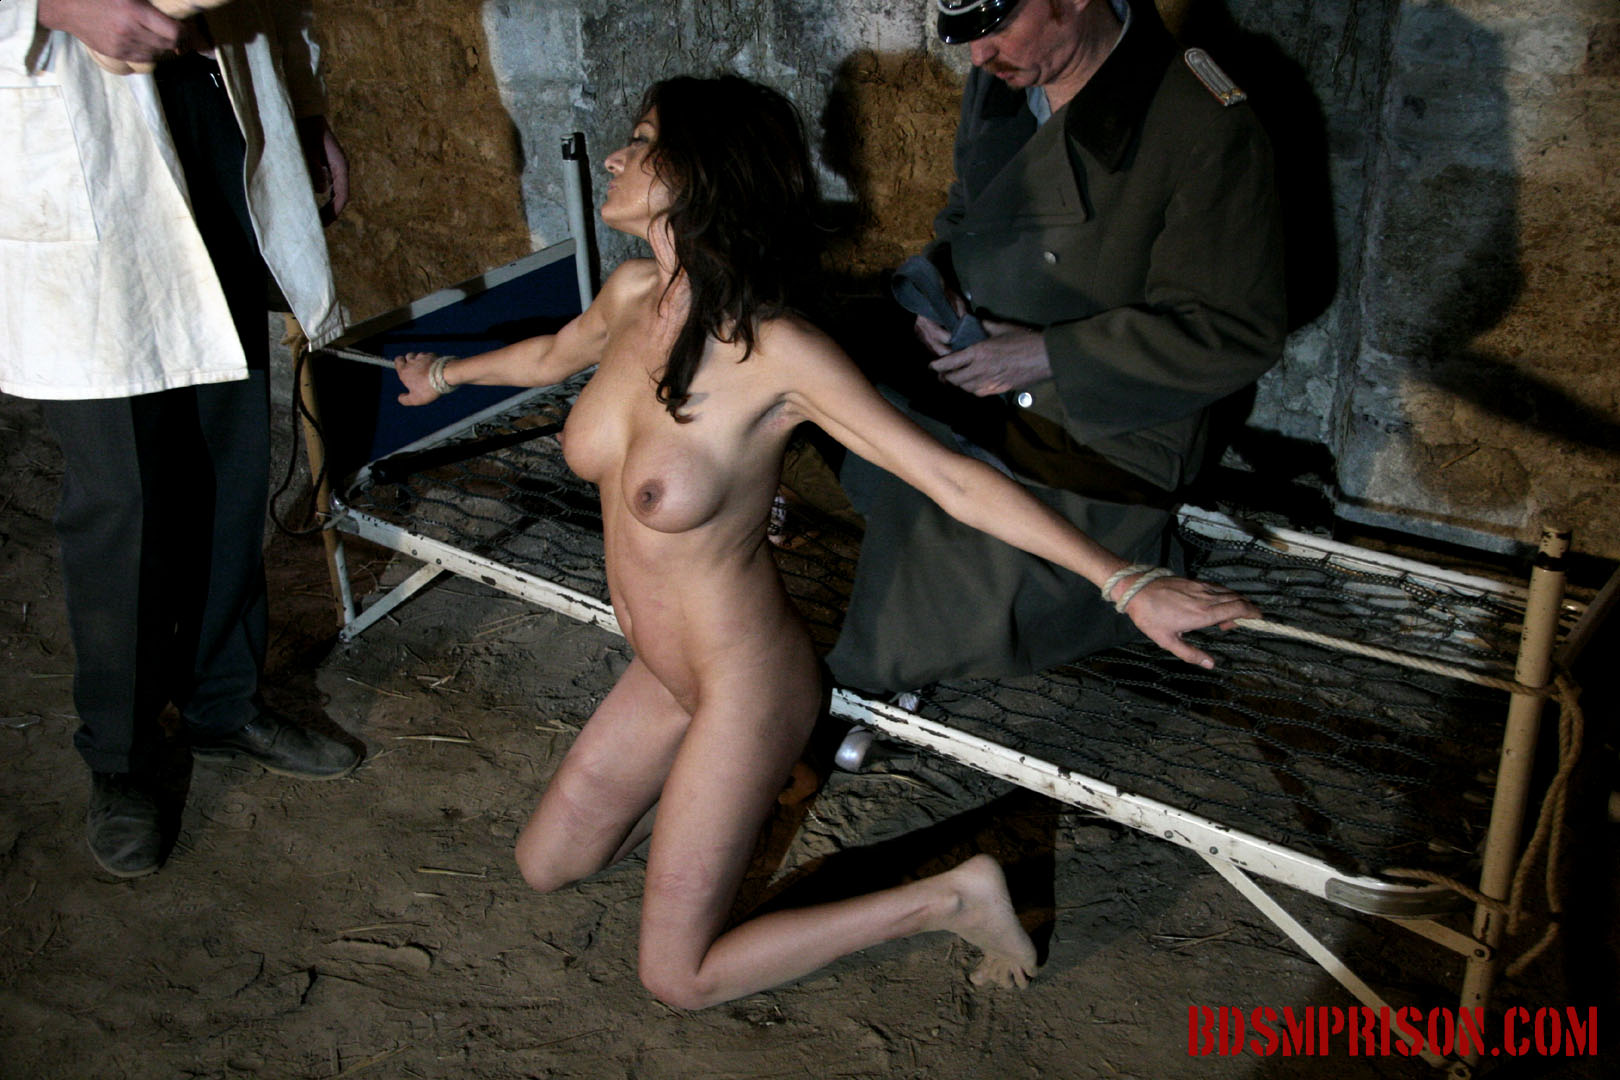 Natalia endures domination rope bondage dildo deepthroat bj. Natalia is castigate daily by a prison doctor and guard. She's been sentenced to lifelong sex slave traininig. Today she is bound to a bed frame. She must endure two BDSM Prison Masters, domination, humiliation, fingering, spanking, smacking, whipping with a leather belt, rope bondage, breast, cunt and nipple torment. Next, one of the guards wants to see her give a sloppy deepthroat blowjob, penetrating her throat violent and fast with a dildo, making her gag up spit all over her tits.